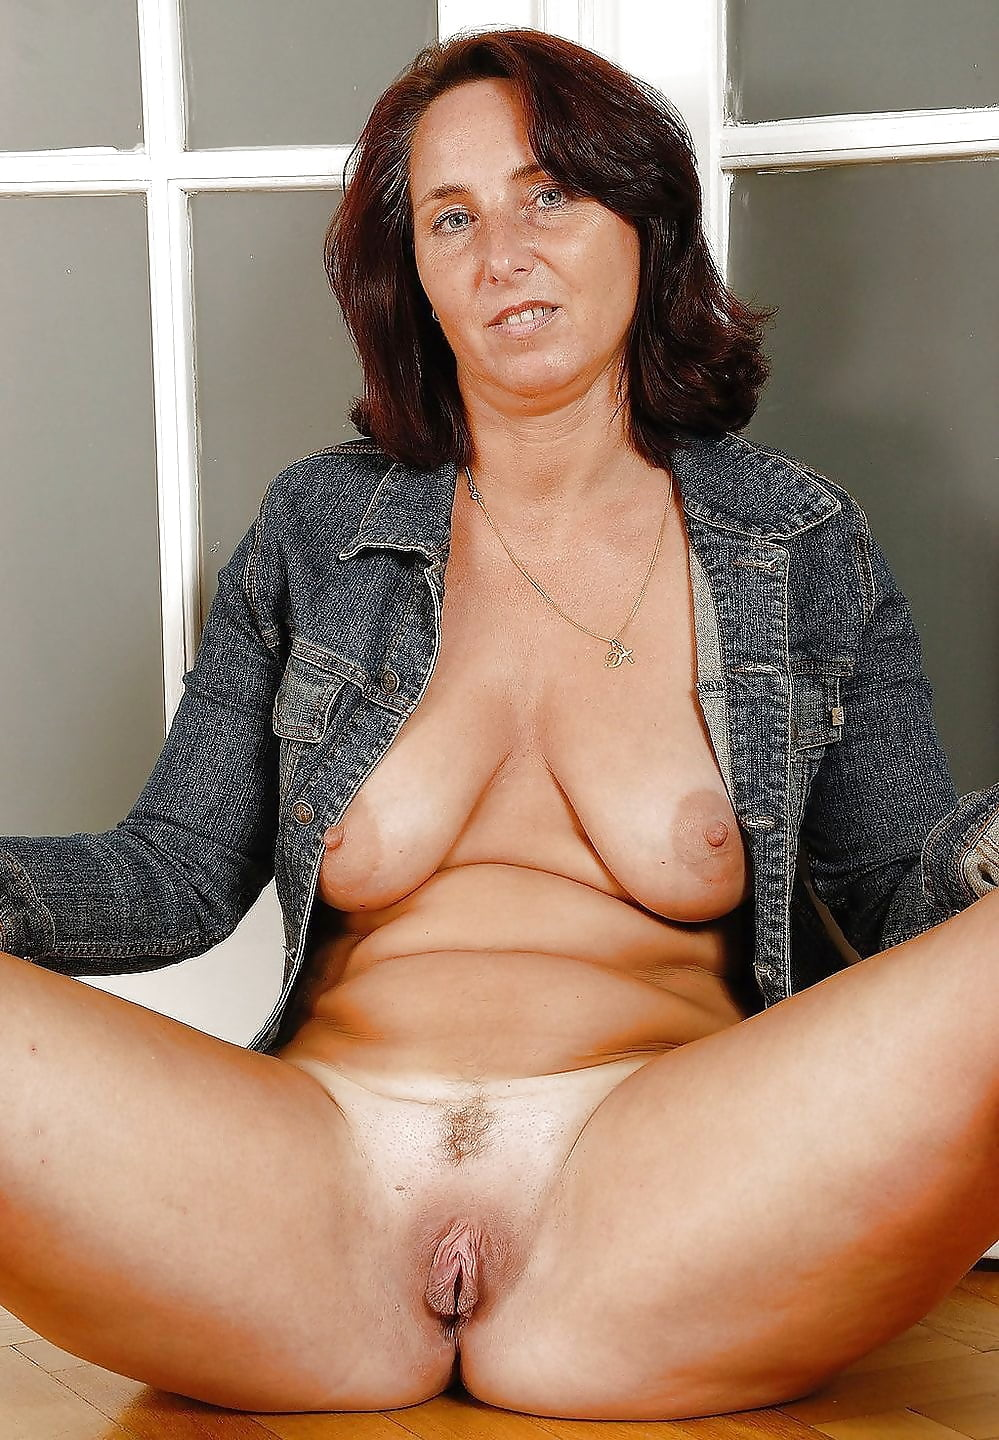 denver-co-mature-women-dark-naked-women